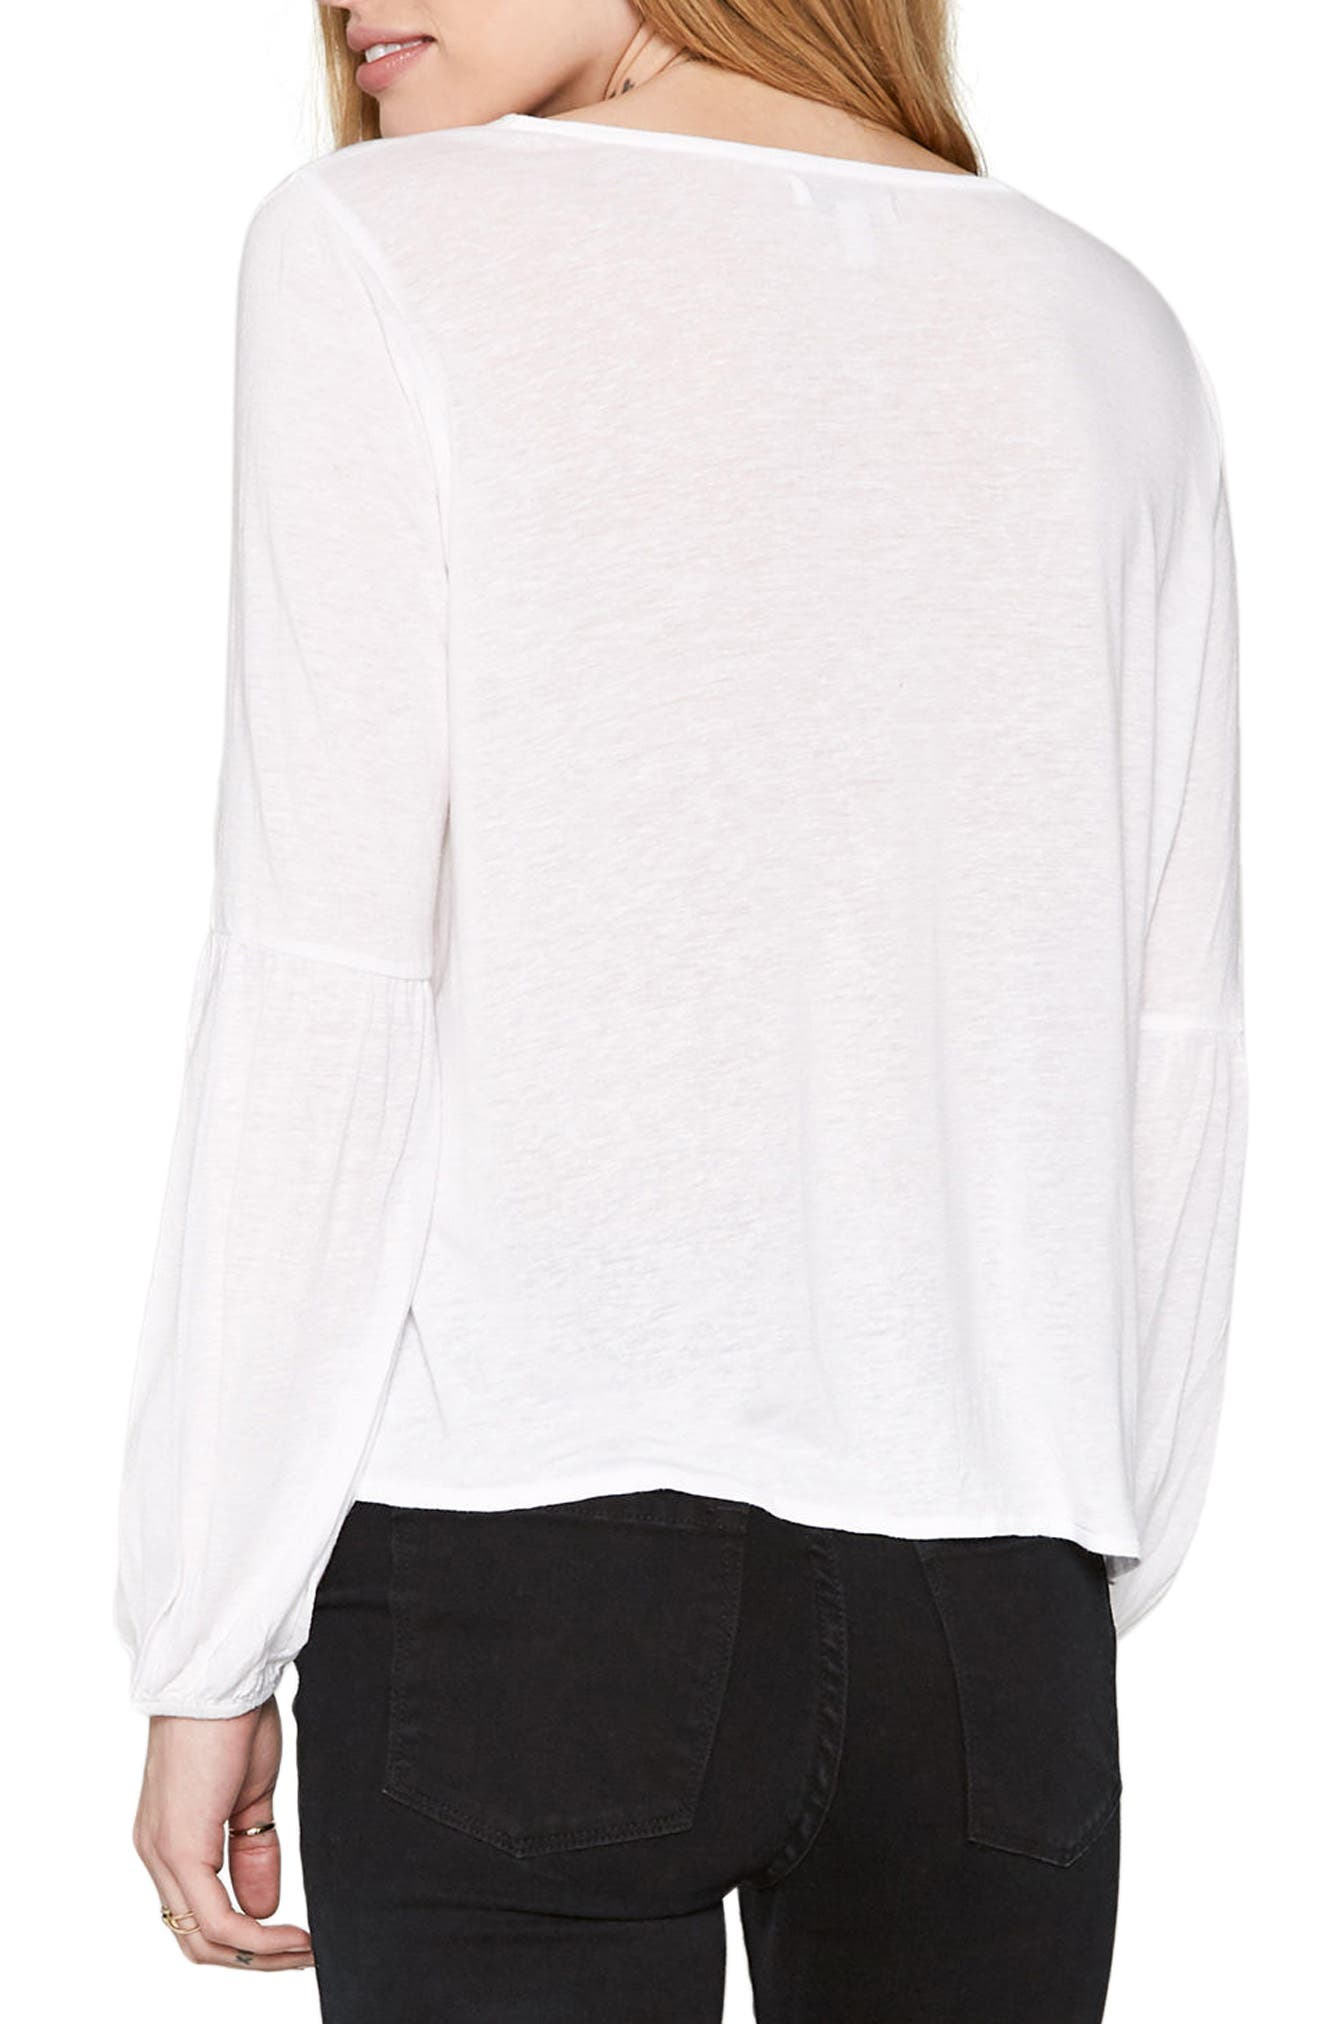 Spencer Lace-Up Top,                             Alternate thumbnail 4, color,